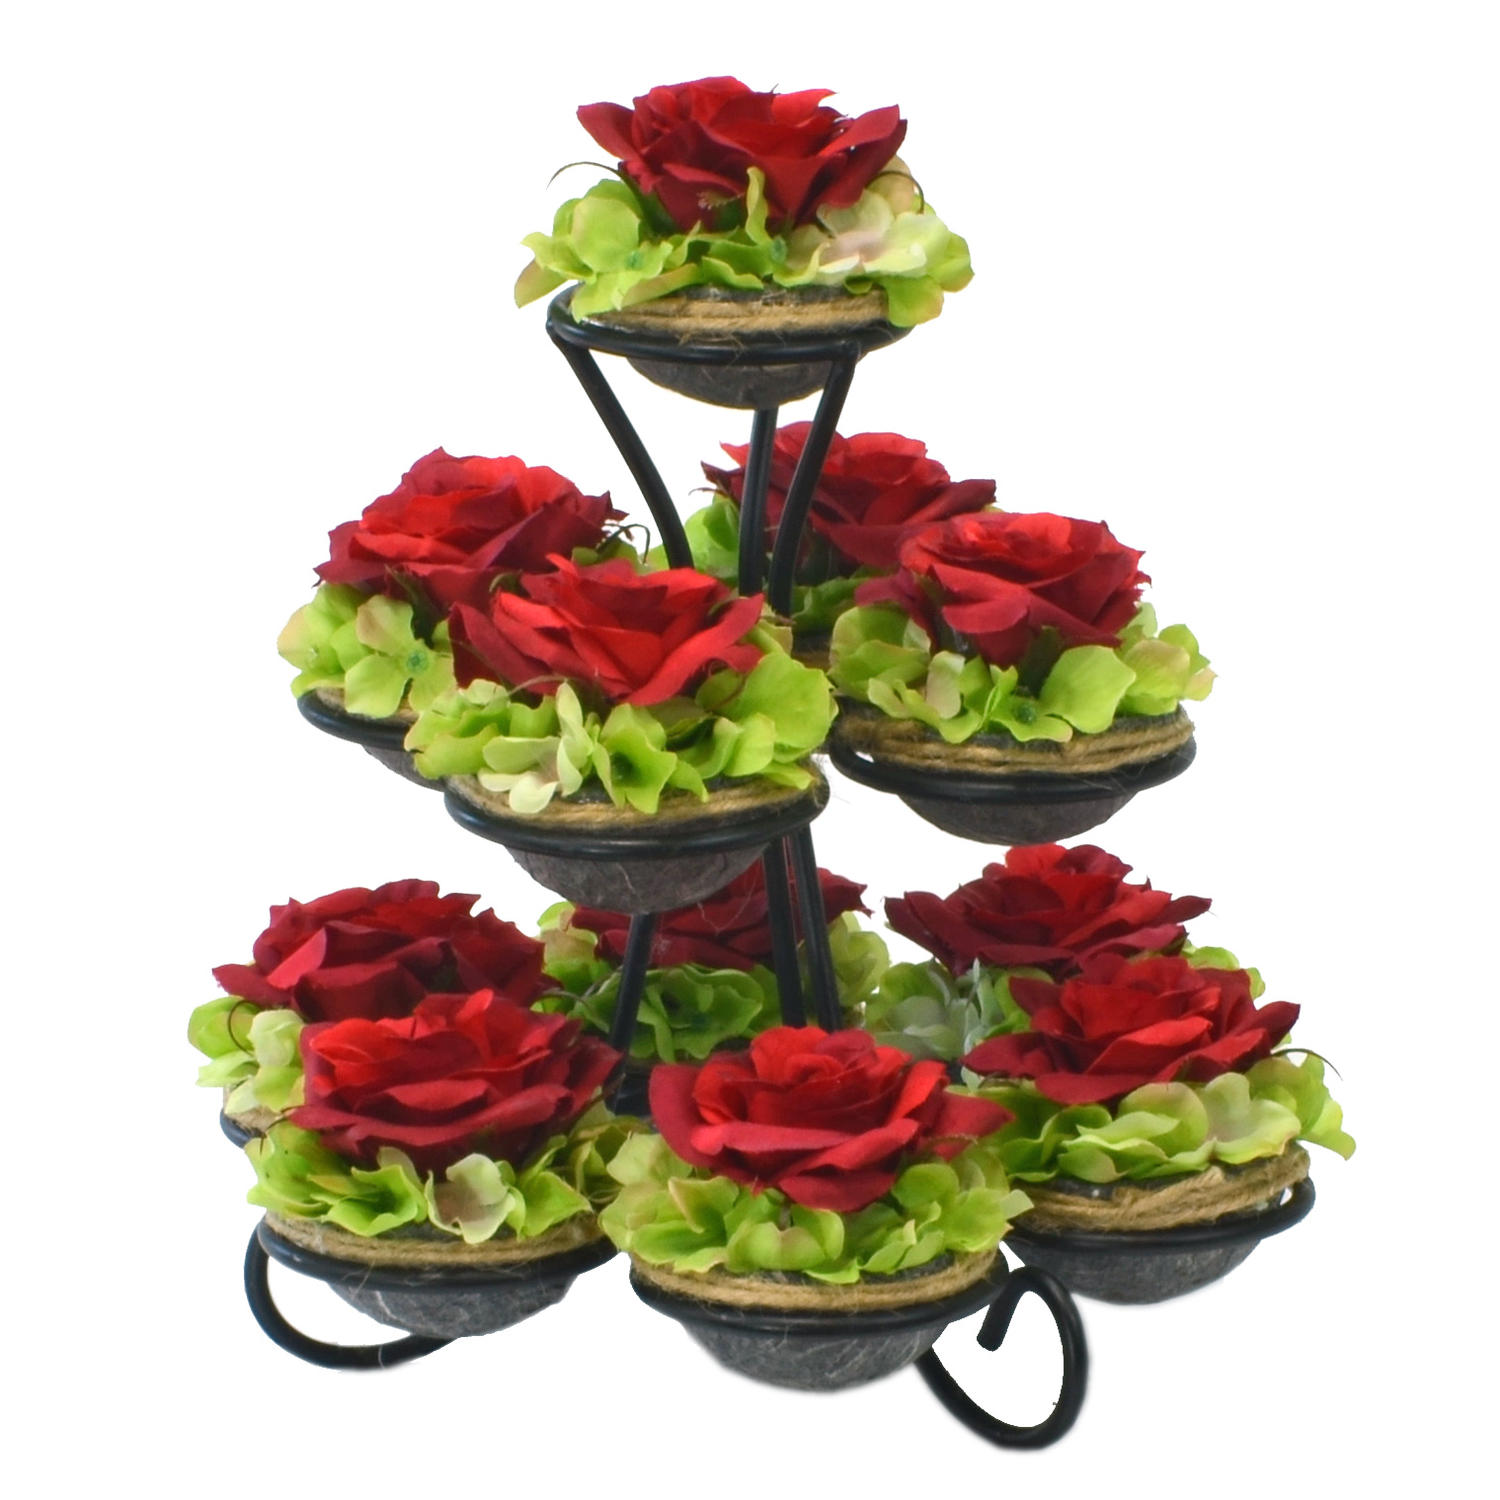 Frou flowers treasures cupcake stand